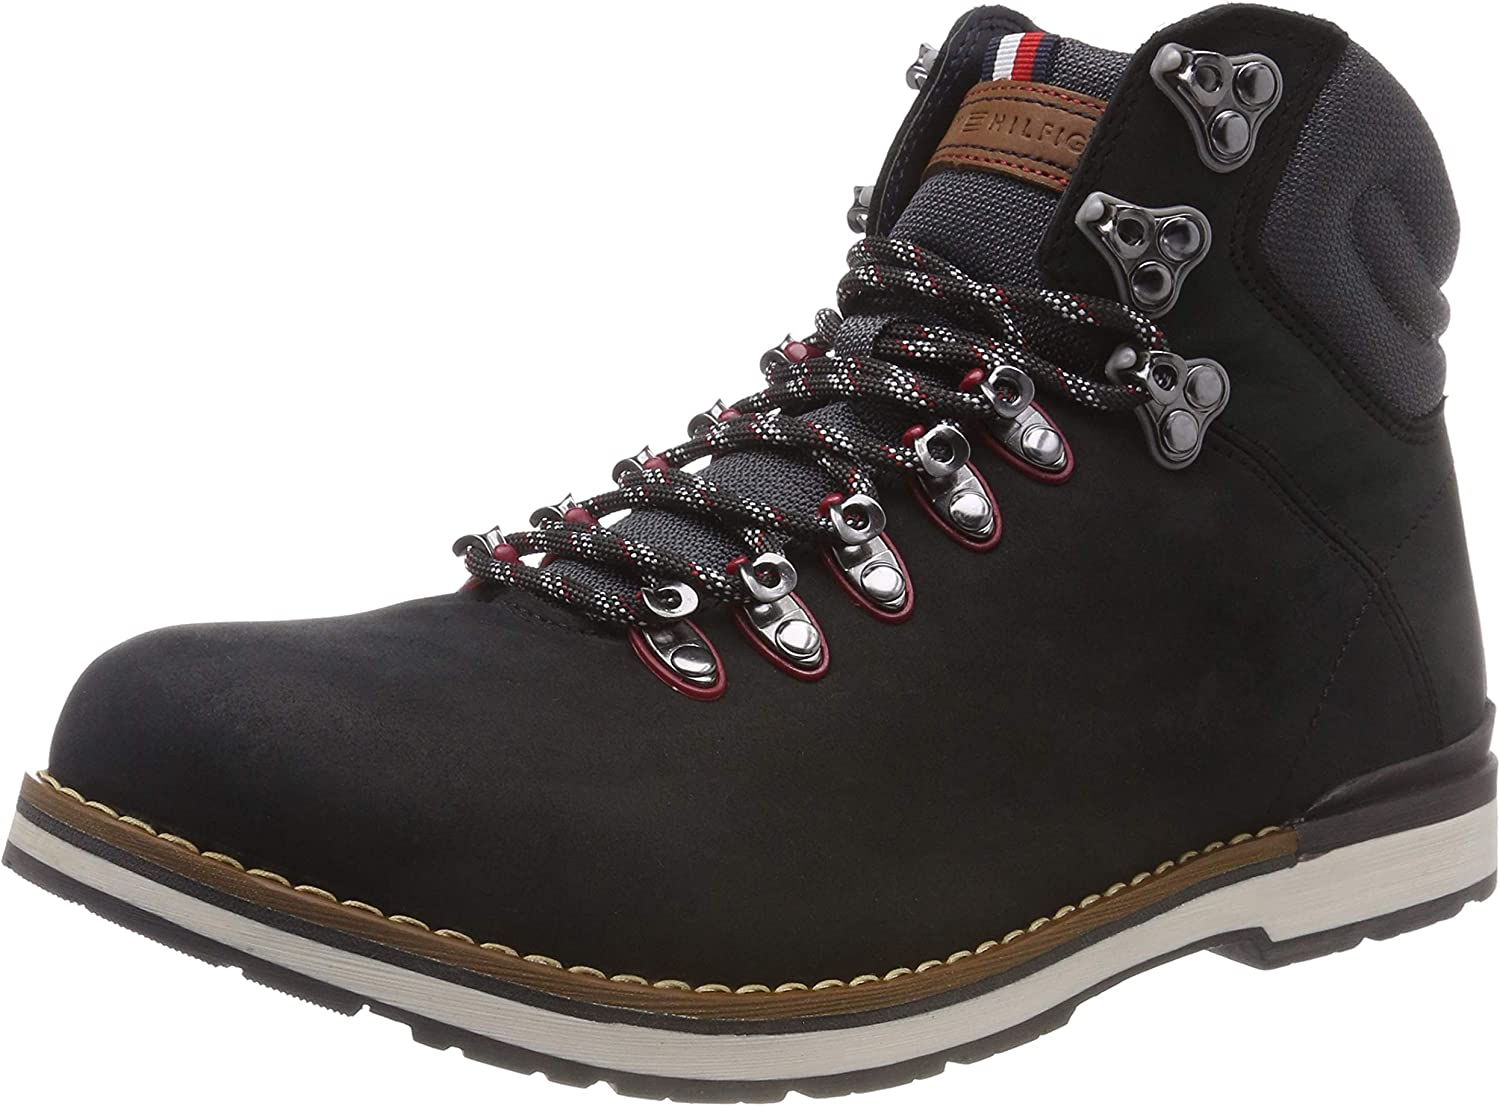 TALLA 41 EU. Tommy Hilfiger Outdoor Hiking Detail Boot, Botas Militar para Hombre